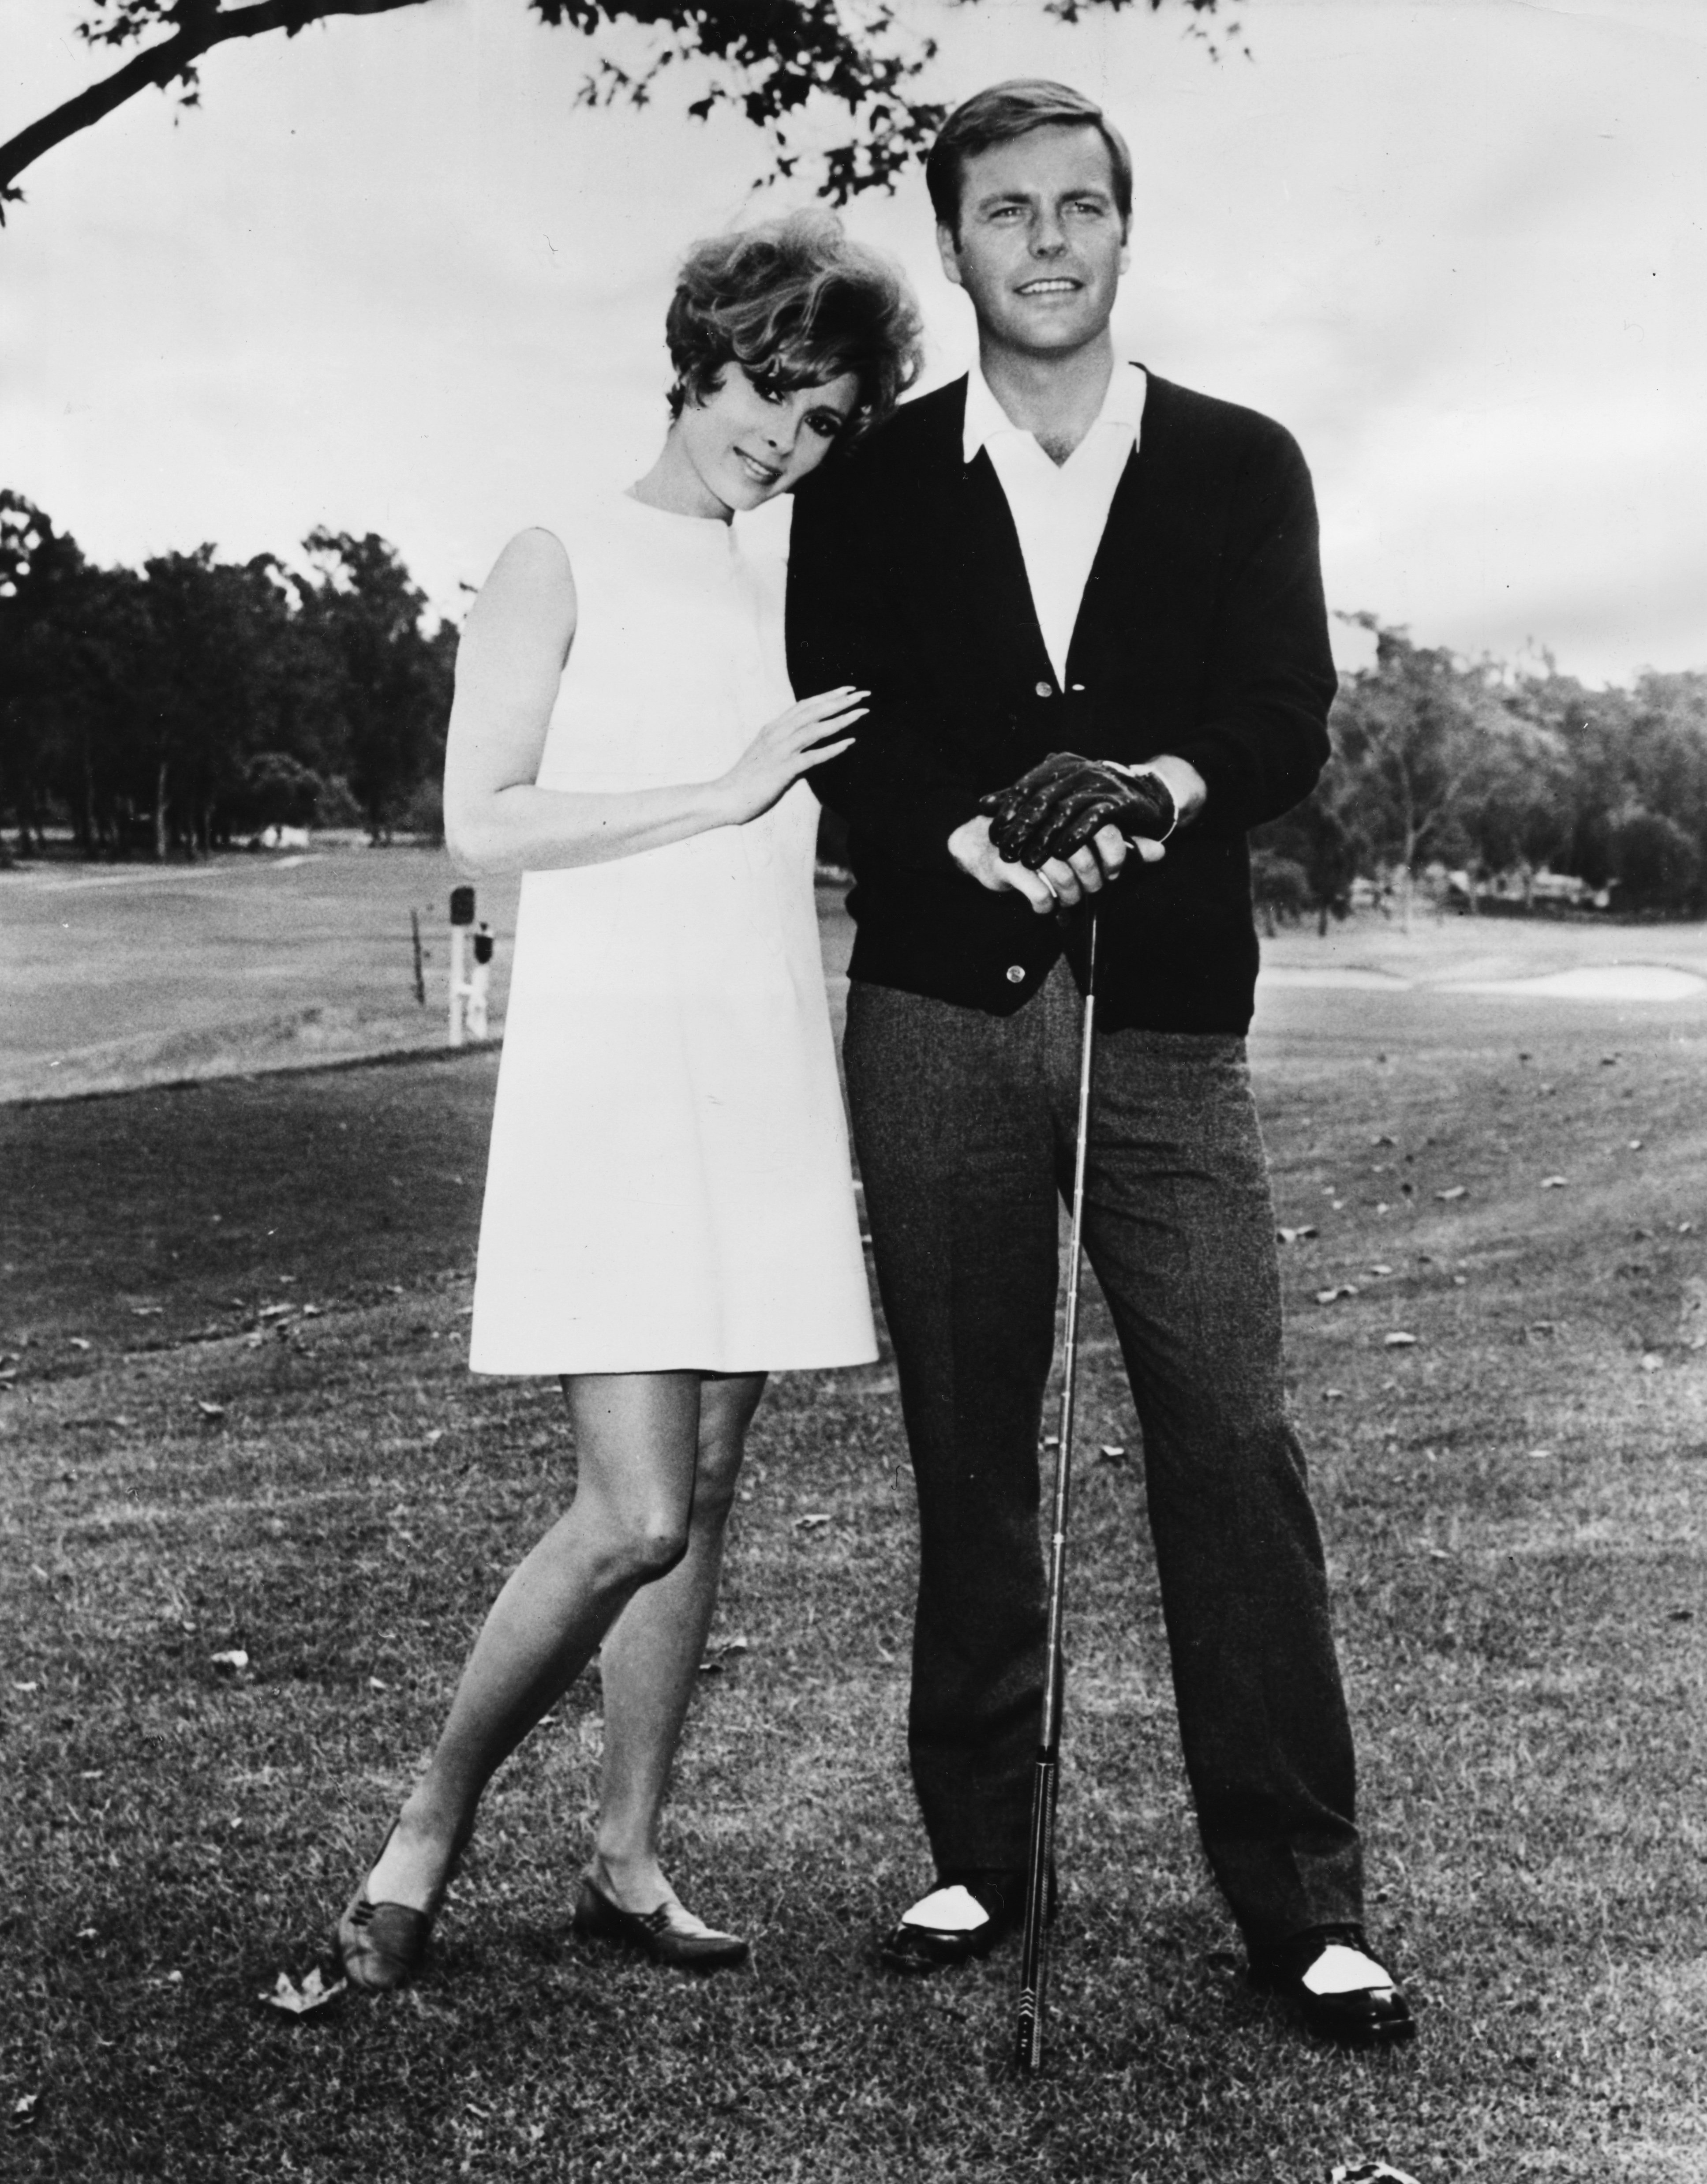 Jill St John giving moral support to actor Robert Wagner during a round of golf in Los Angeles, CA, January 7, 1967. | Source: Getty Images.